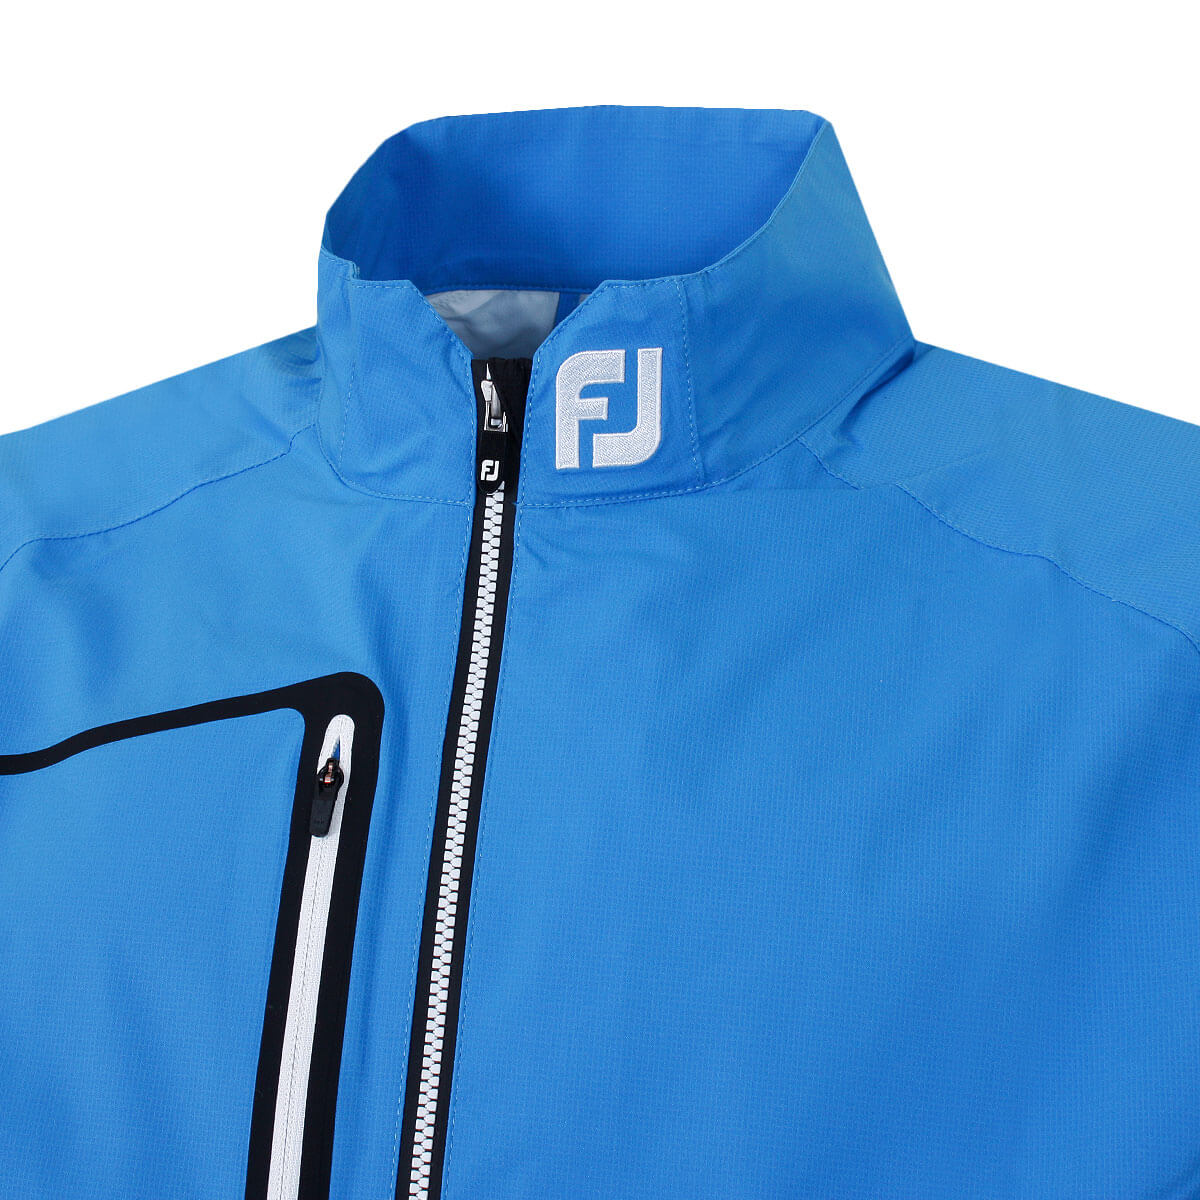 Footjoy-Mens-Hydrolite-Rain-Waterproof-Lightweight-FJ-Golf-Jacket-47-OFF-RRP thumbnail 8